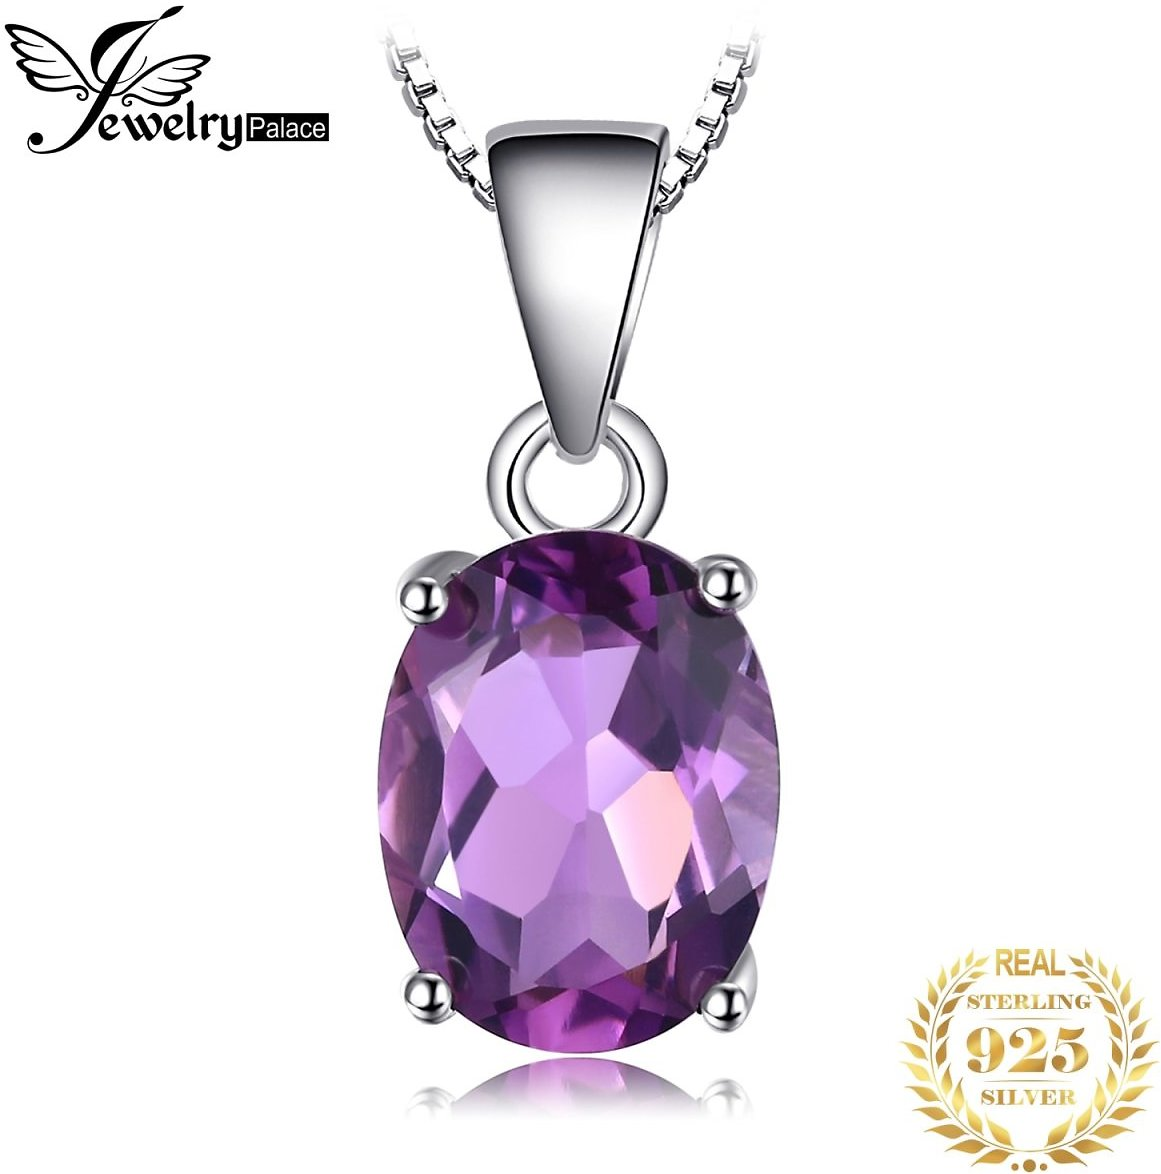 US $4.67 39% OFF Natural Amethyst Pendant Necklace 925 Sterling Silver Gemstone Choker Statement Necklace Women Silver 925 Jewelry Without Chain jewelry Pendant jewelry Fashionjewelry Wholesale - AliExpress